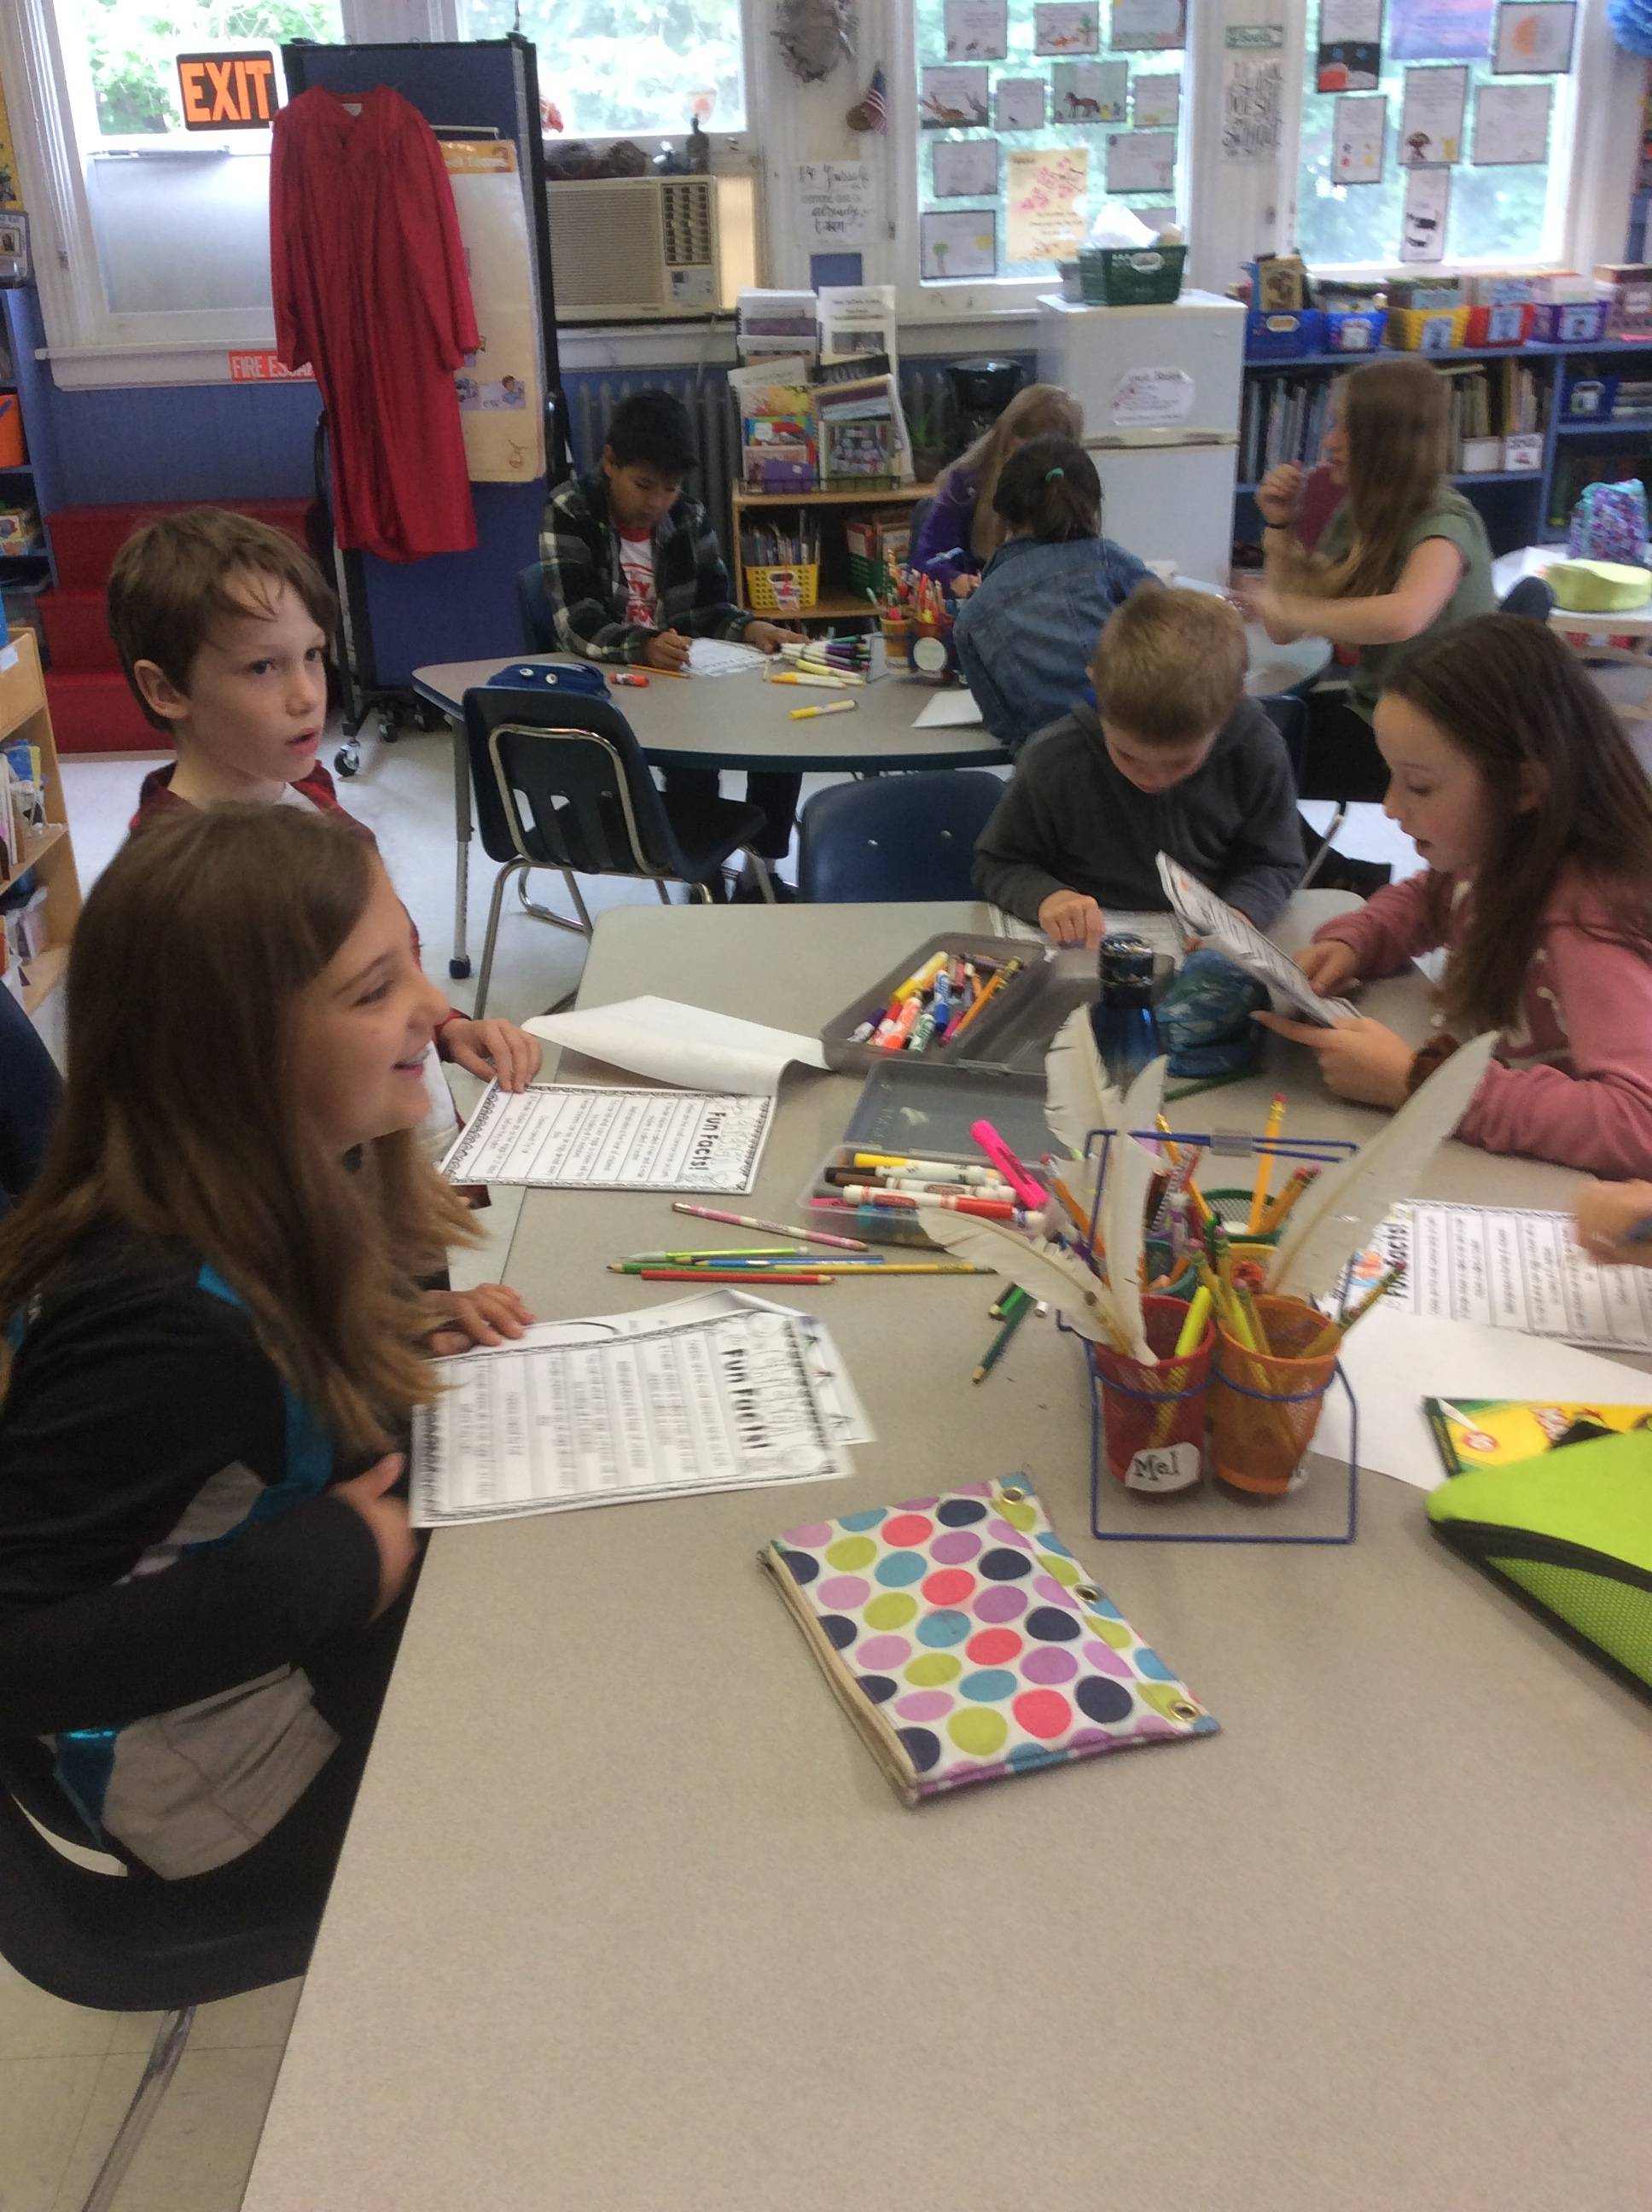 Older students working with the primary students.